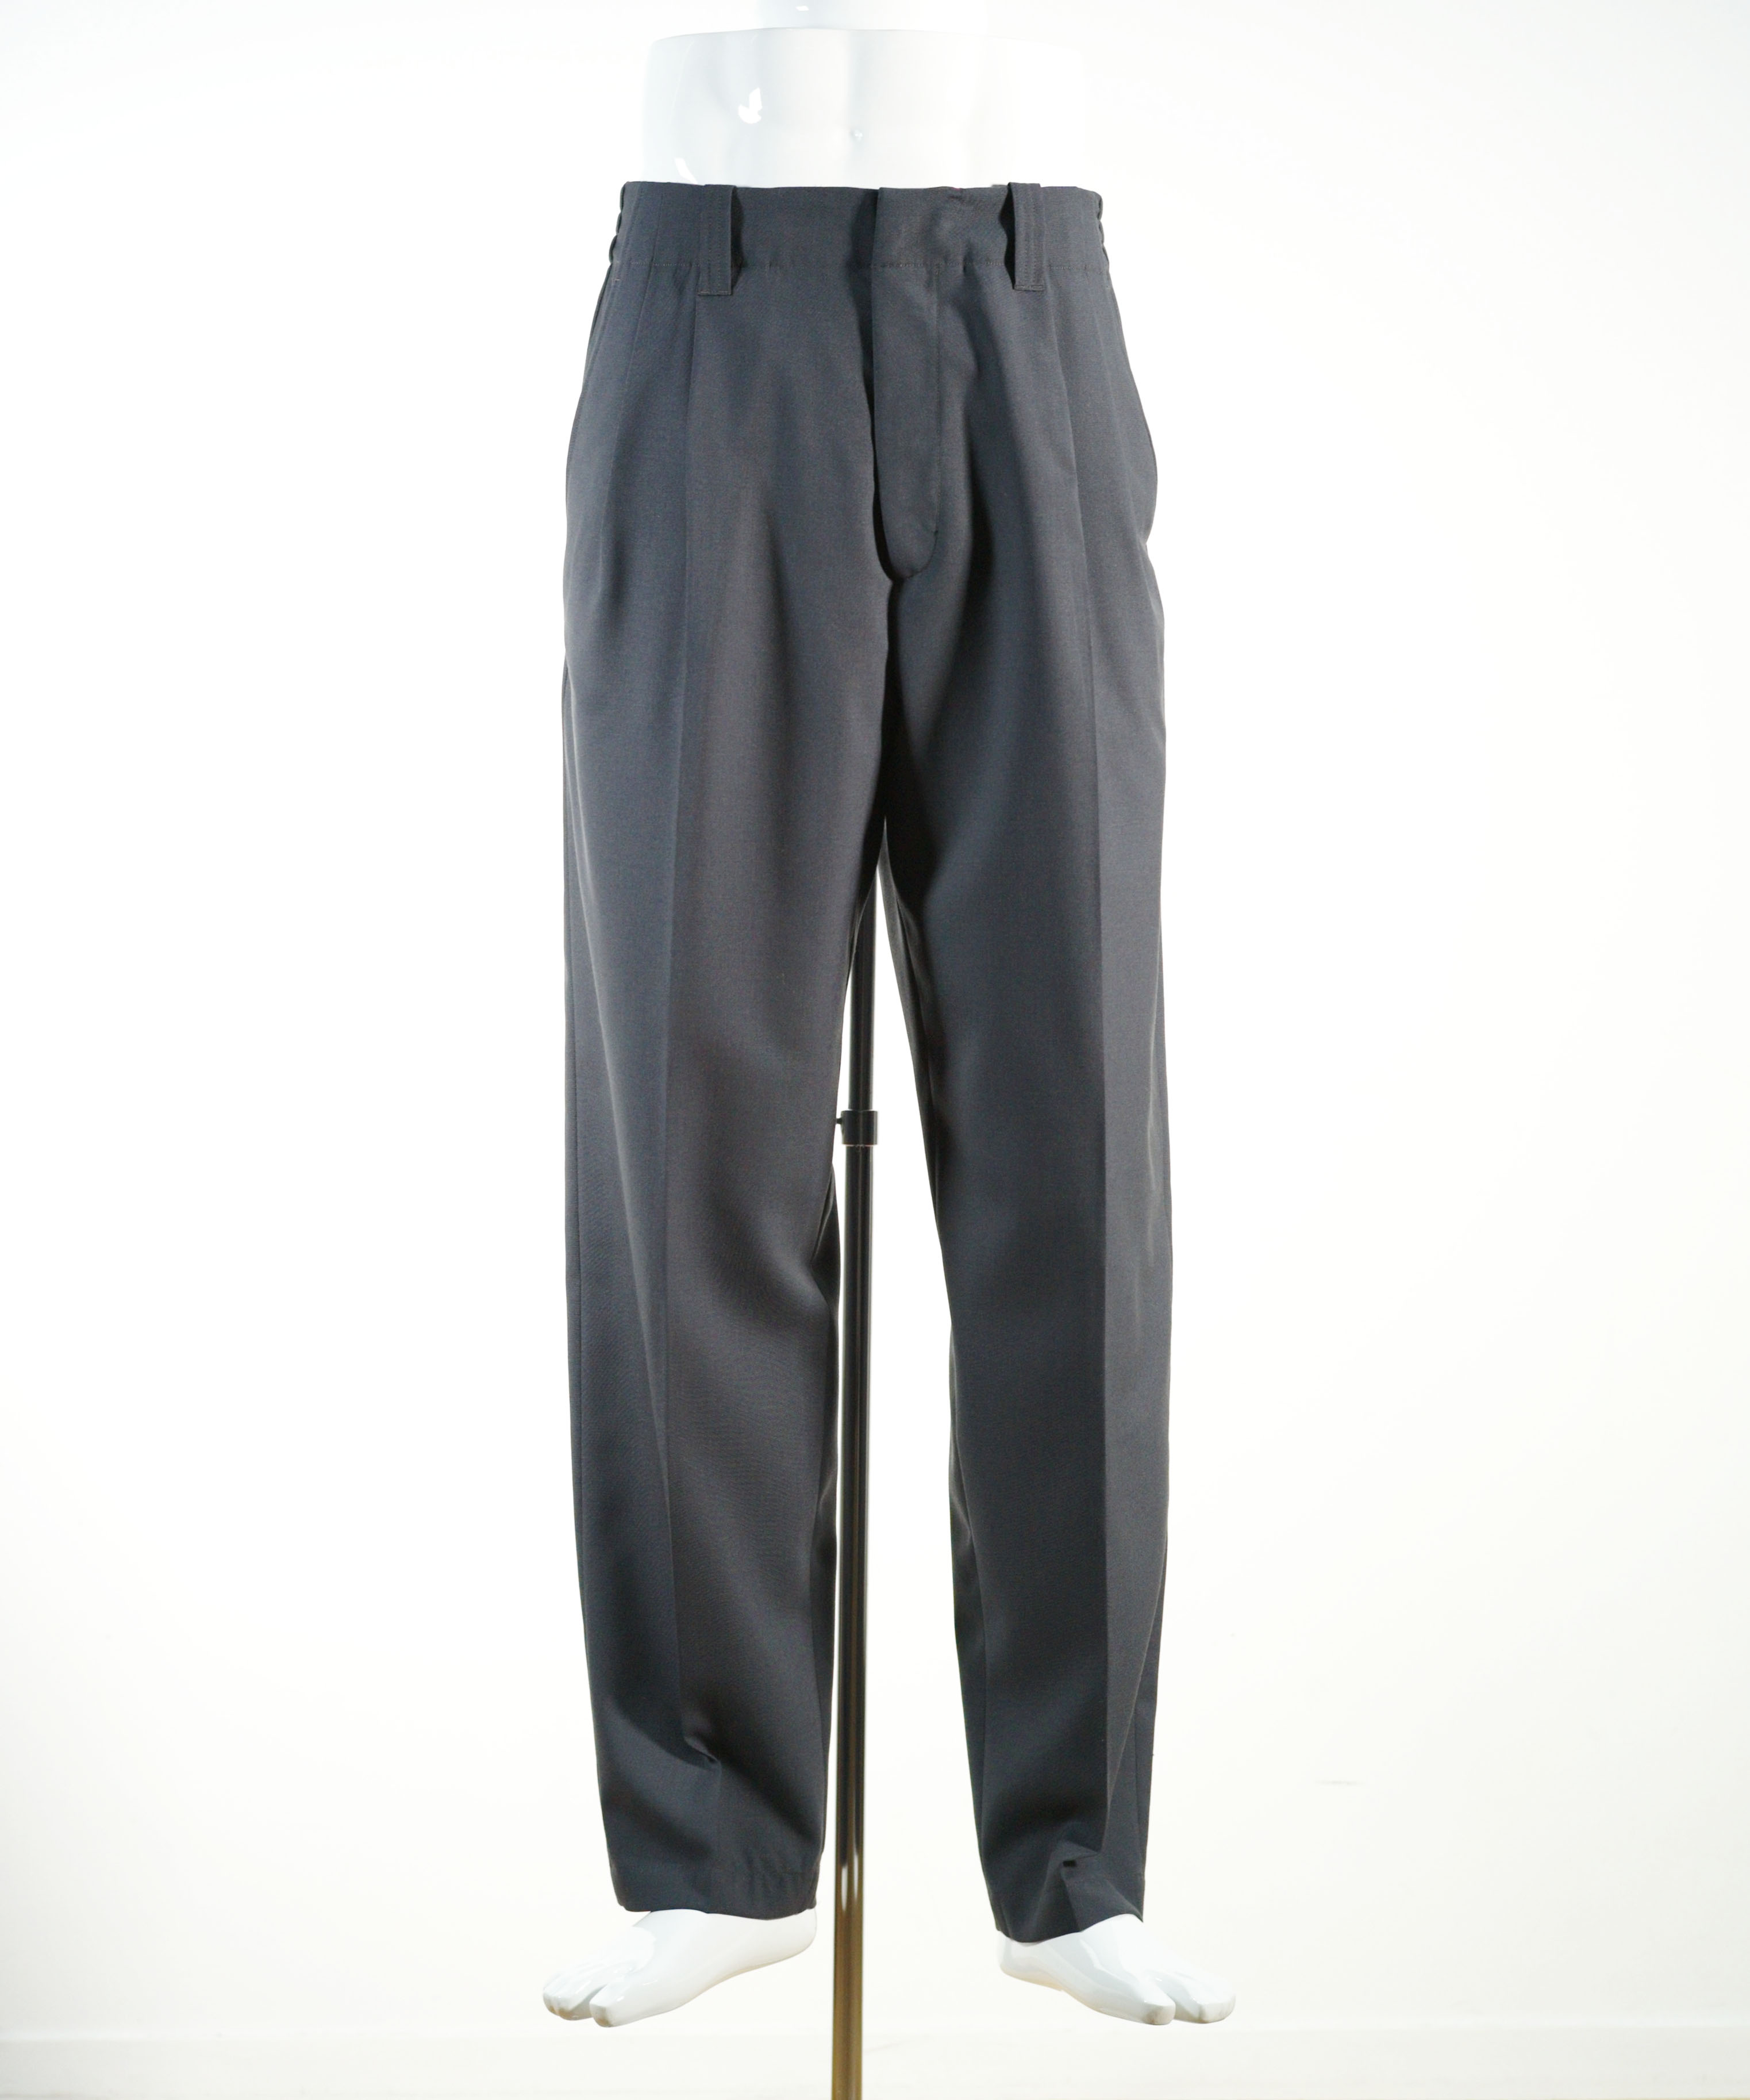 MARNI TRIPICAL WOOL PANTS ANTHRACITE